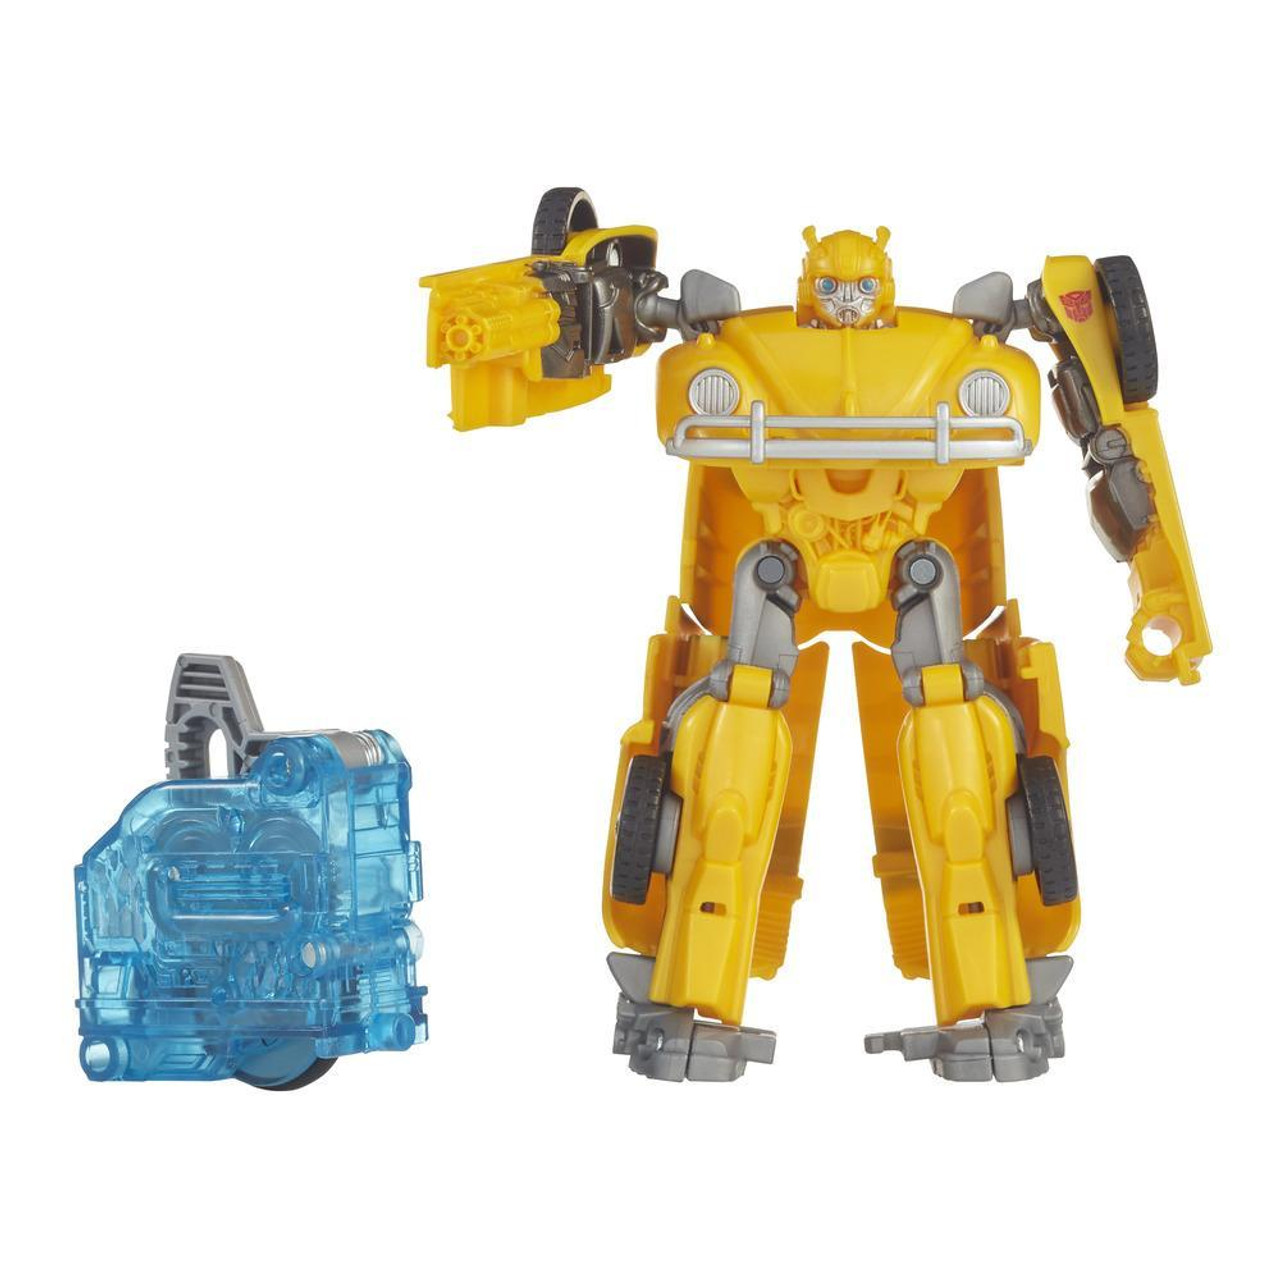 e97500307f3 TRANSFORMERS MV6 ENERGON IGNITERS POWER PLUS - BUMBLEBEE 92 - Uncle ...